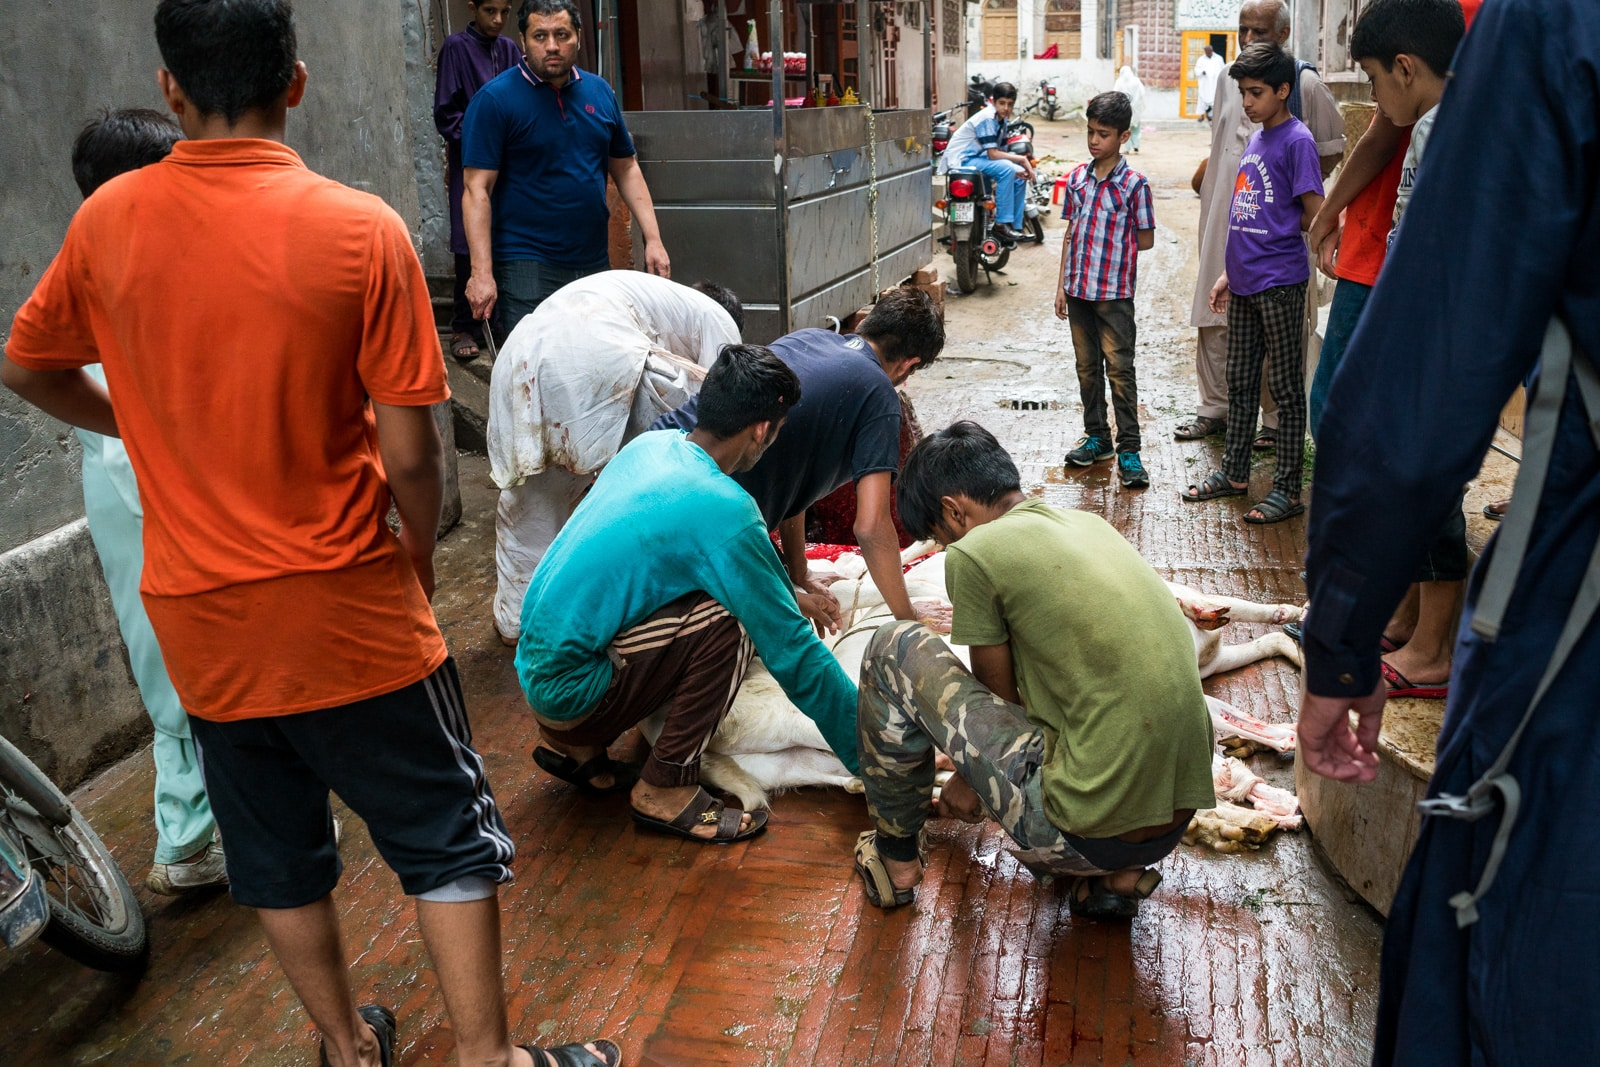 Celebrating Eid al-Adha in Lahore, Pakistan - Boys sacrificing a goat - Lost With Purpose travel blog